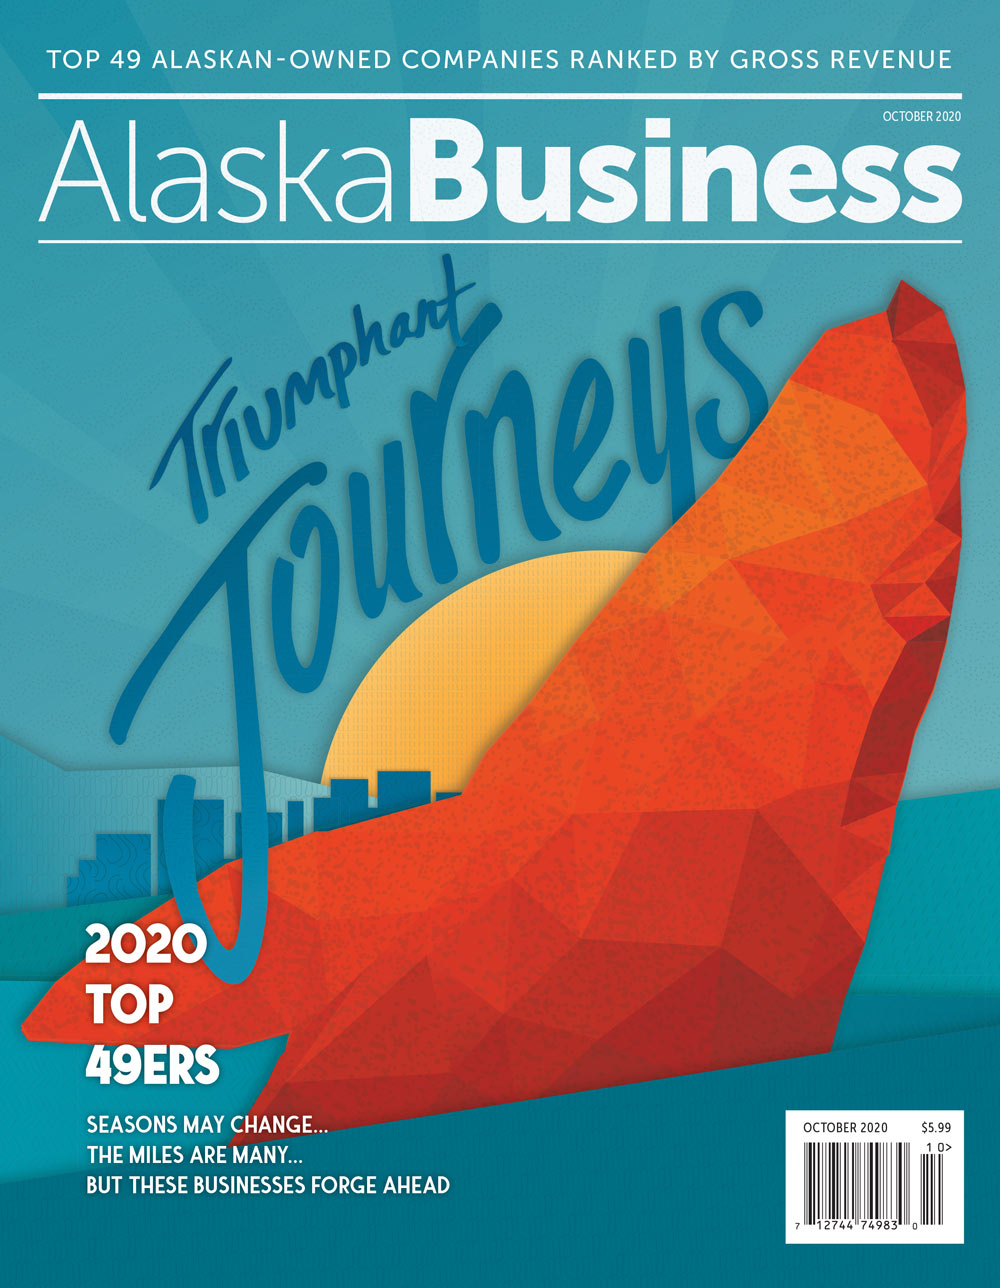 Alaska Business Magazine October 2020 Cover